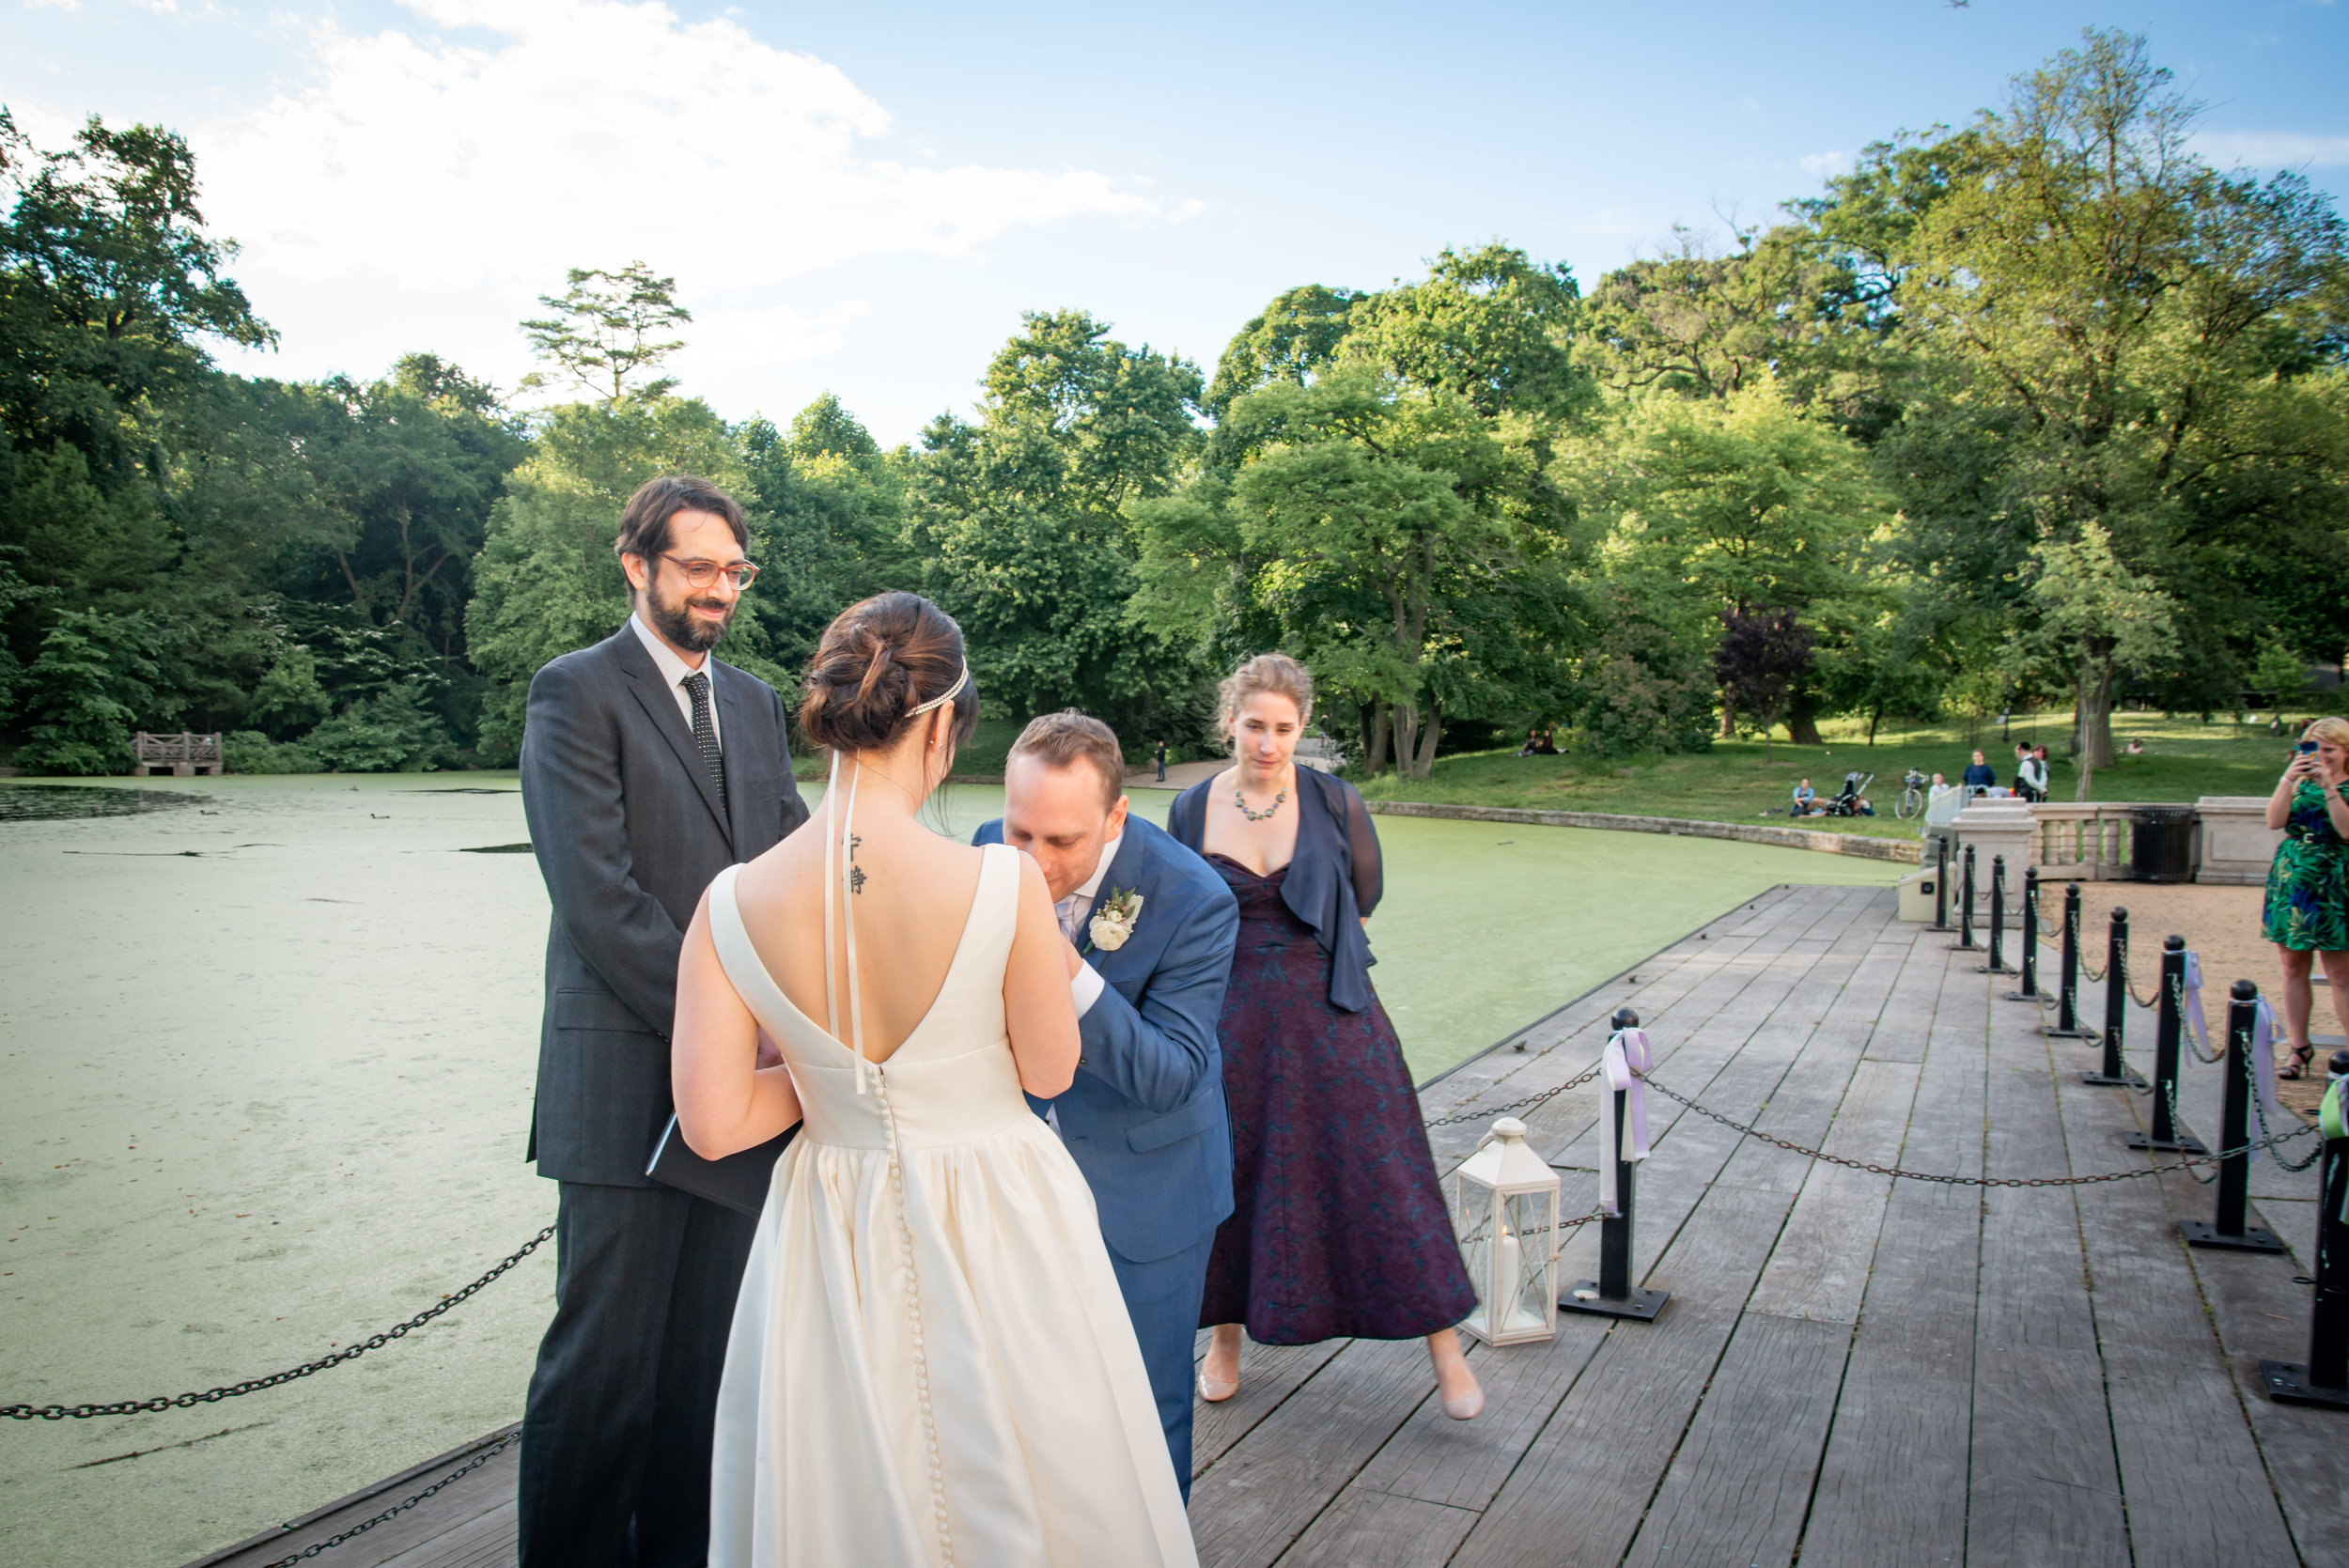 Prospect Park Boat House Wedding Ceremony.jpg